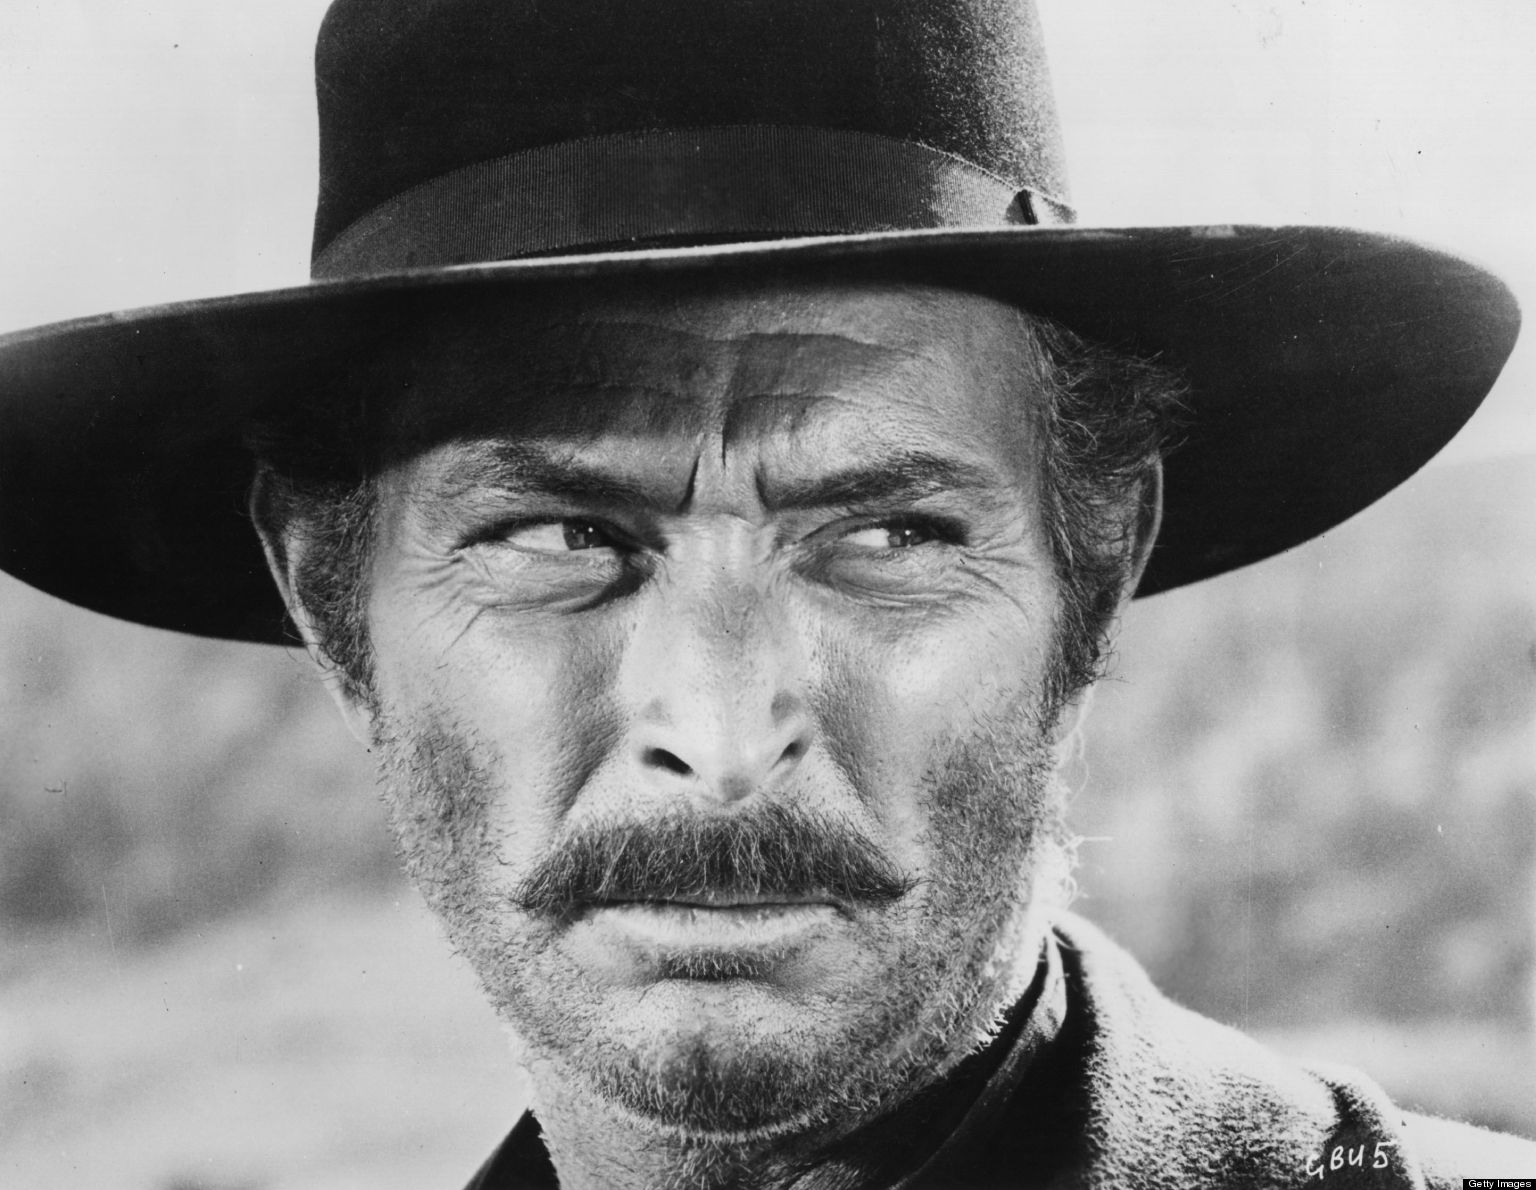 Lee Van Cleef - Alchetron, The Free Social Encyclopedia